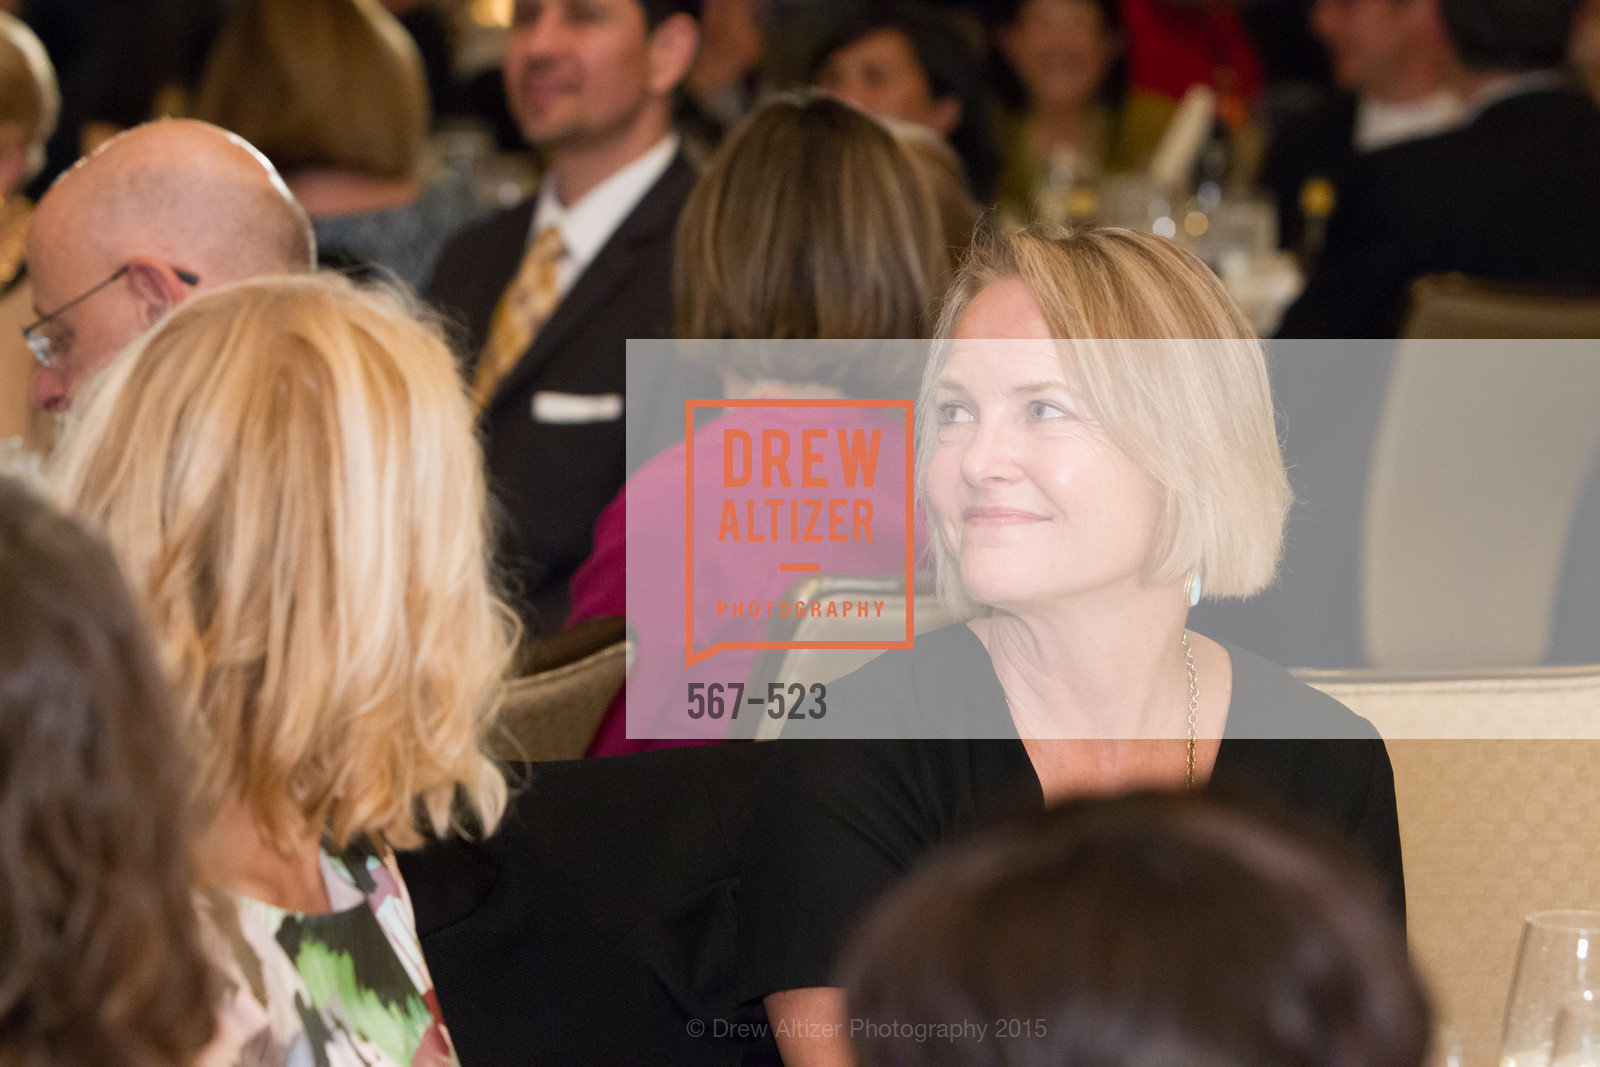 Extras, San Francisco Education Fund's 33rd Annual Back to School Gala, November 12th, 2015, Photo,Drew Altizer, Drew Altizer Photography, full-service agency, private events, San Francisco photographer, photographer california